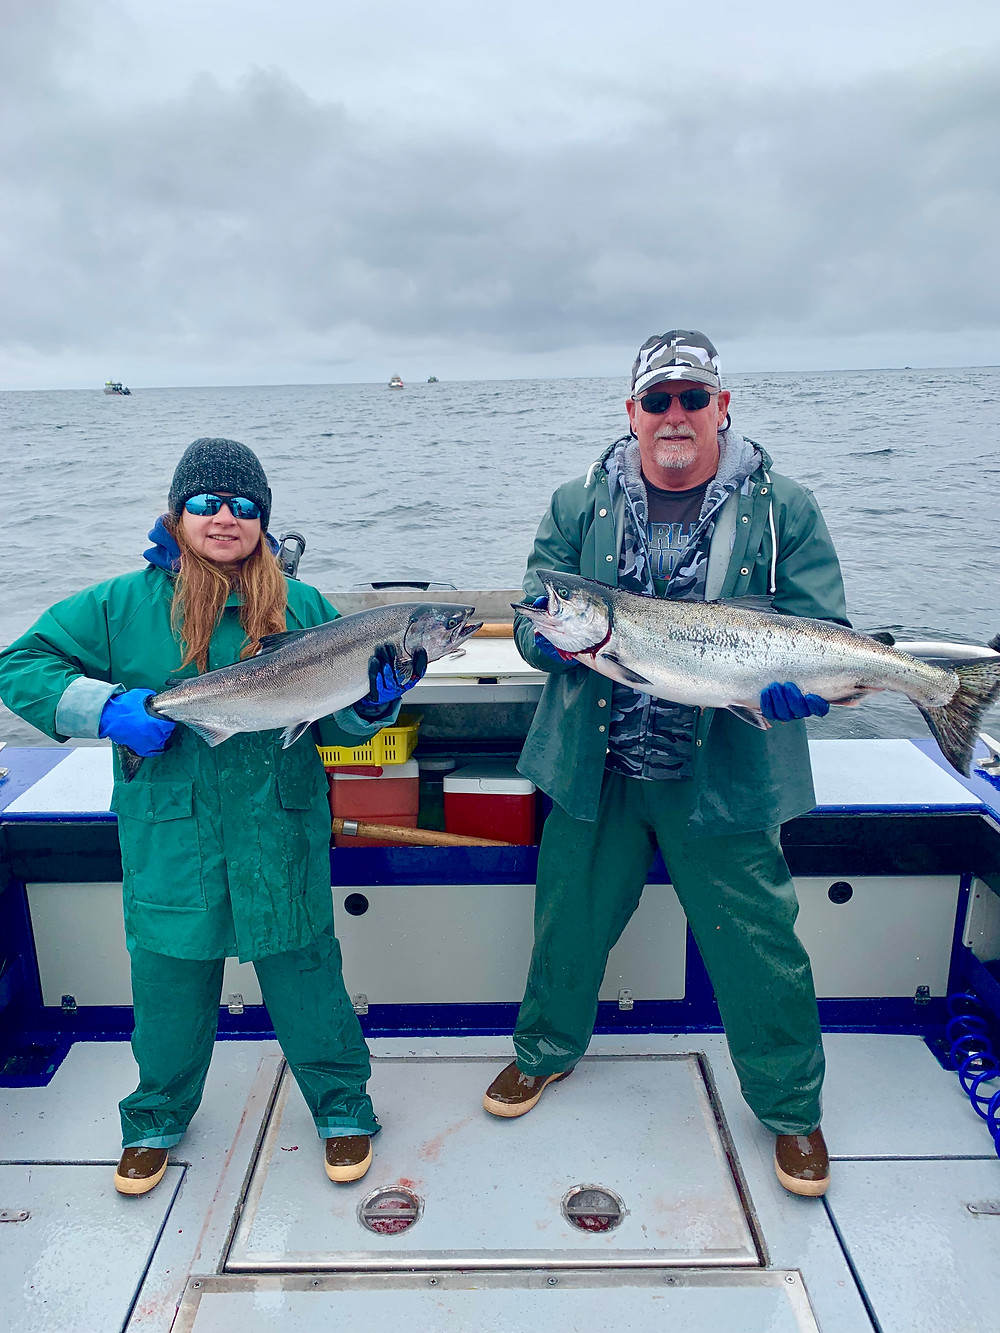 King salmon fishing in Sitka, Alaska